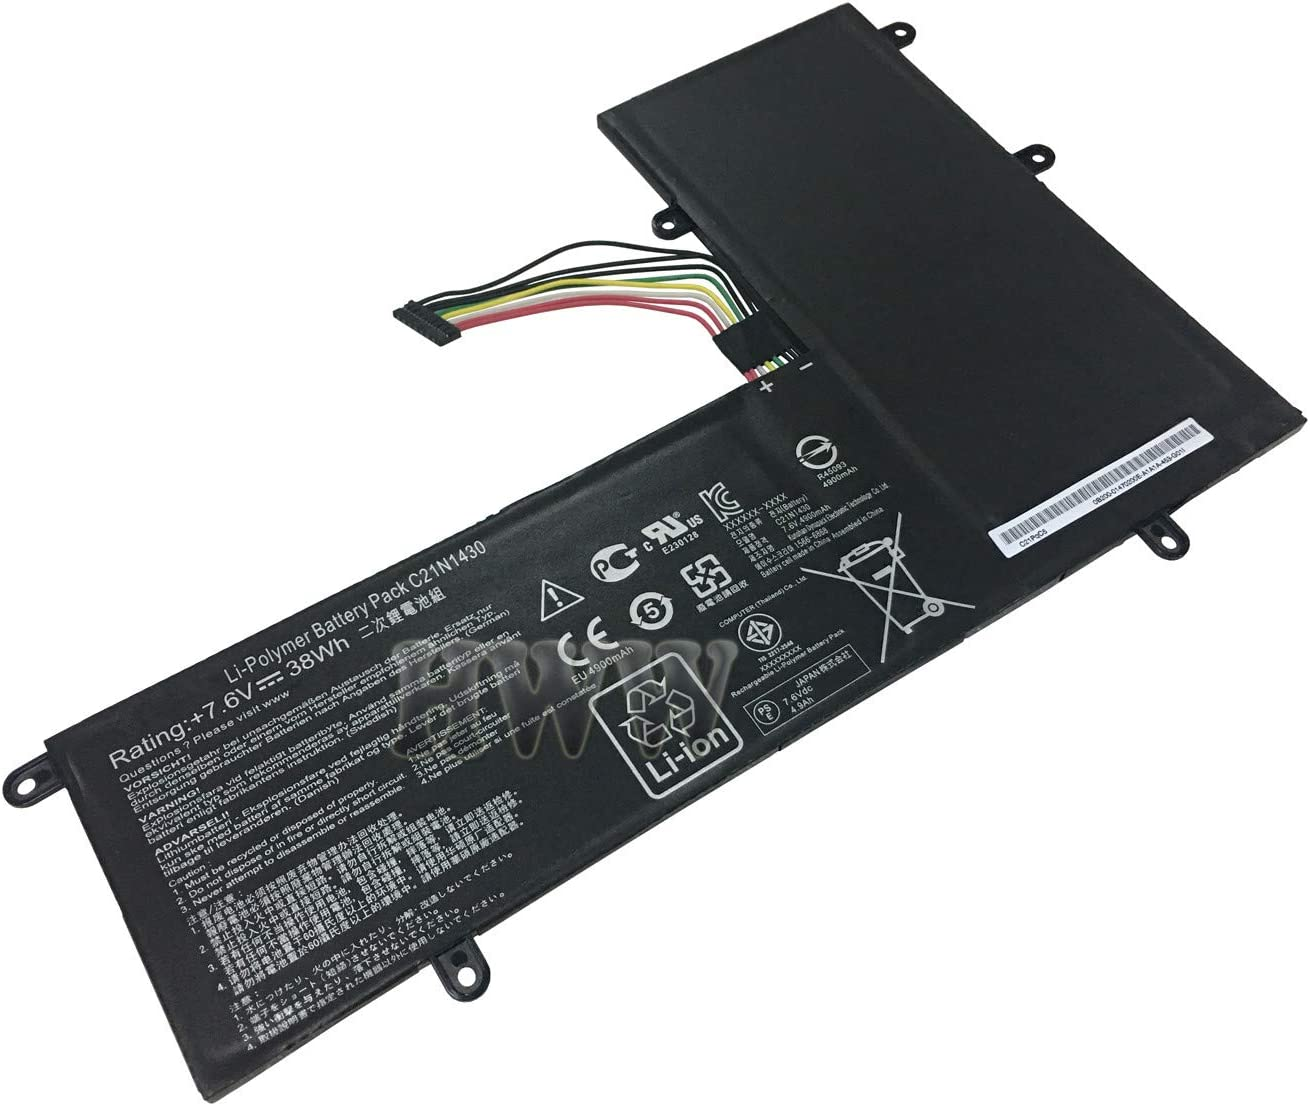 HWW New 7.6V 38Wh C21N1430 Battery Compatible with Asus Chromebook C201PA_C-2B C201PA5 Series